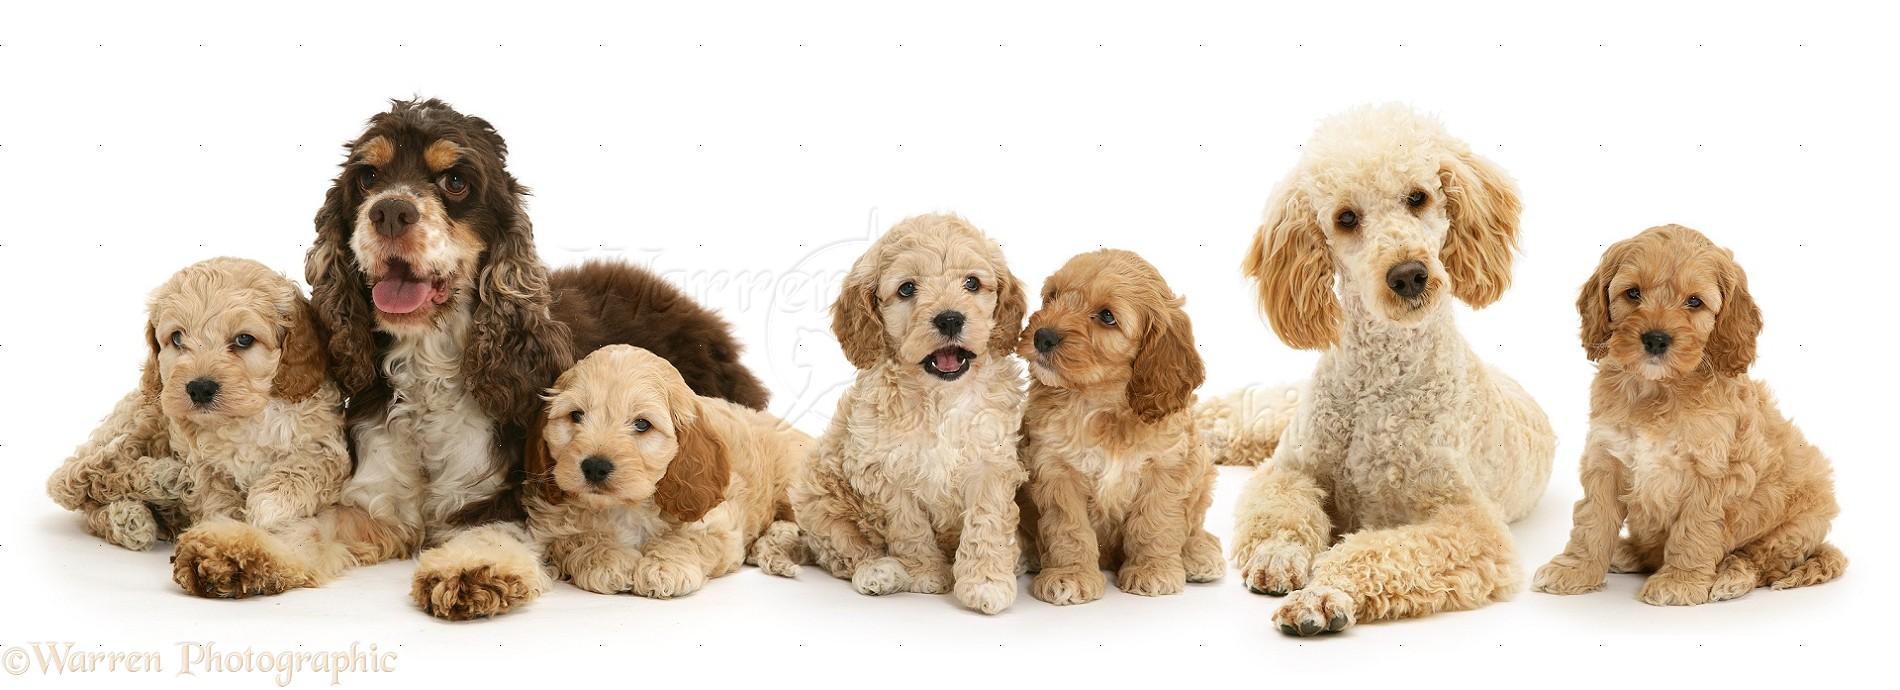 Dogs: Cockapoo family photo WP15002